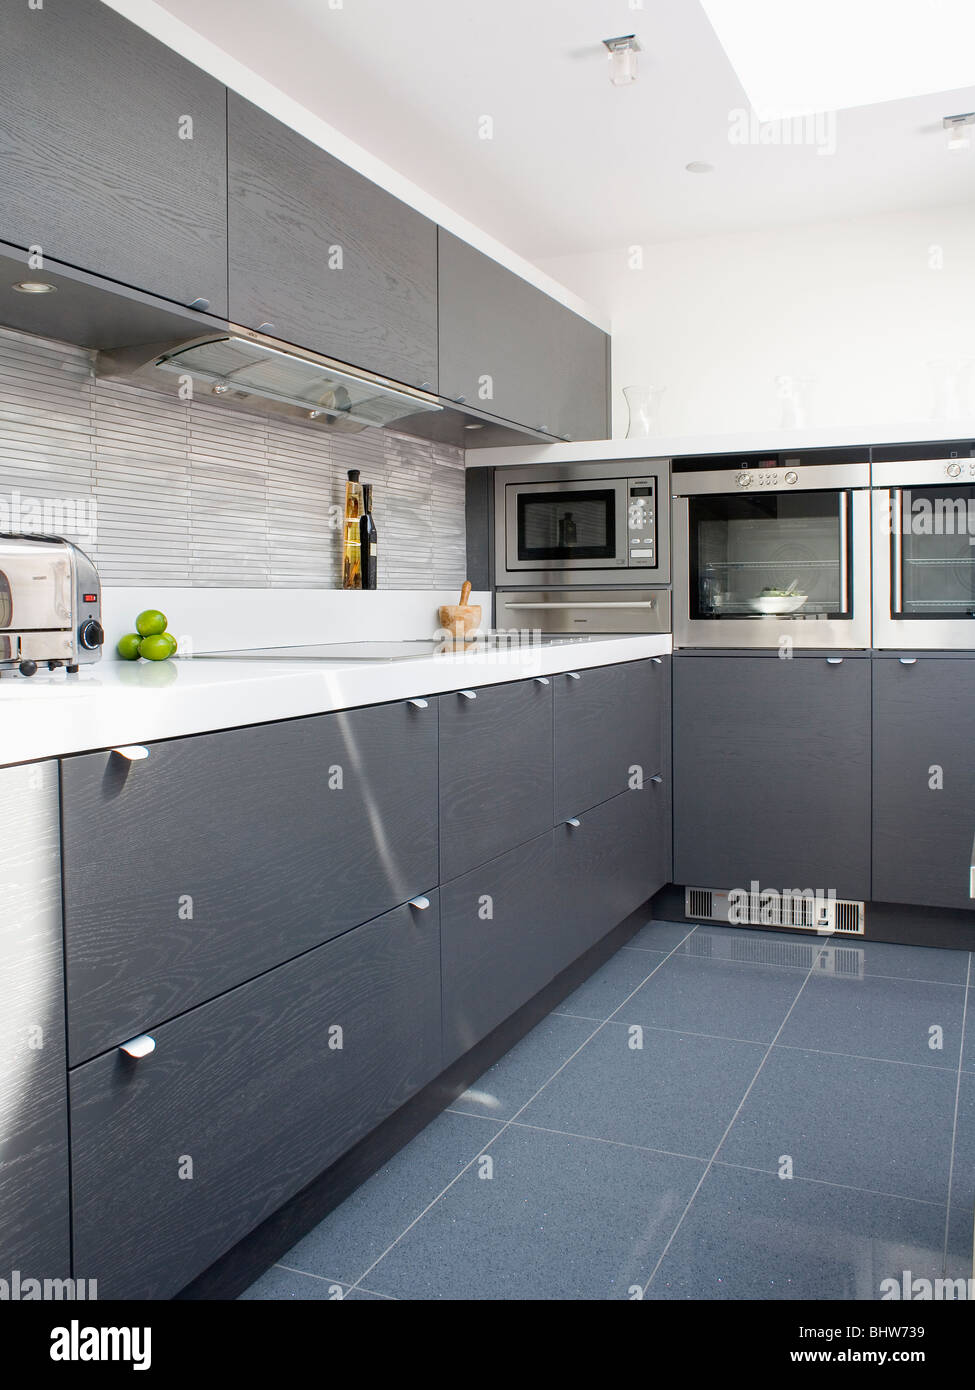 Grey Ceramic Floor Tiles In Modern White Kitchen With Dark Gray Fitted  Cupboards And Units